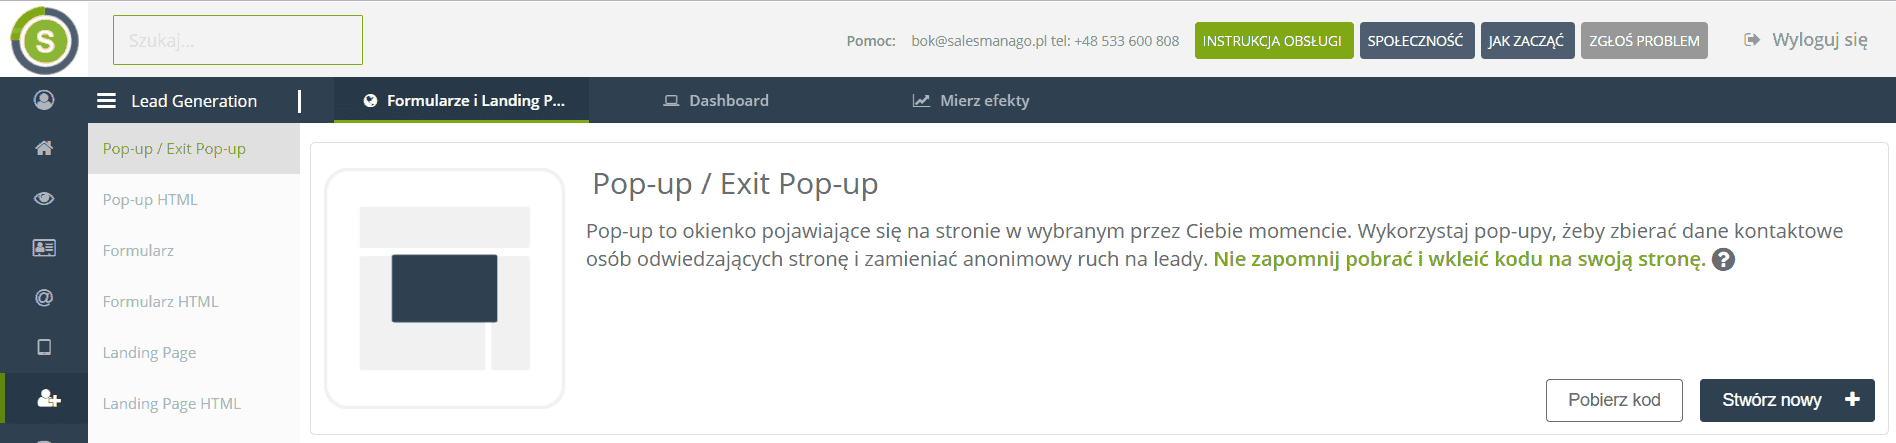 lead generation salesmanago popup